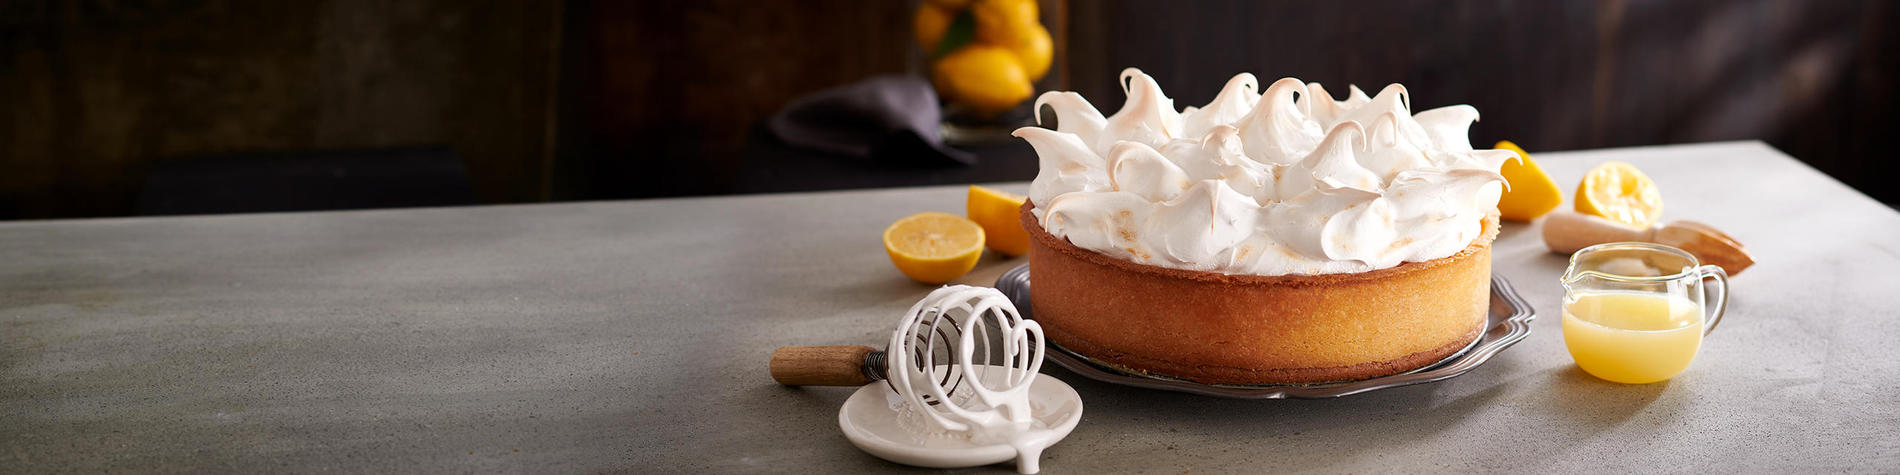 Mugg & Bean's lemon cake served on a grey table.